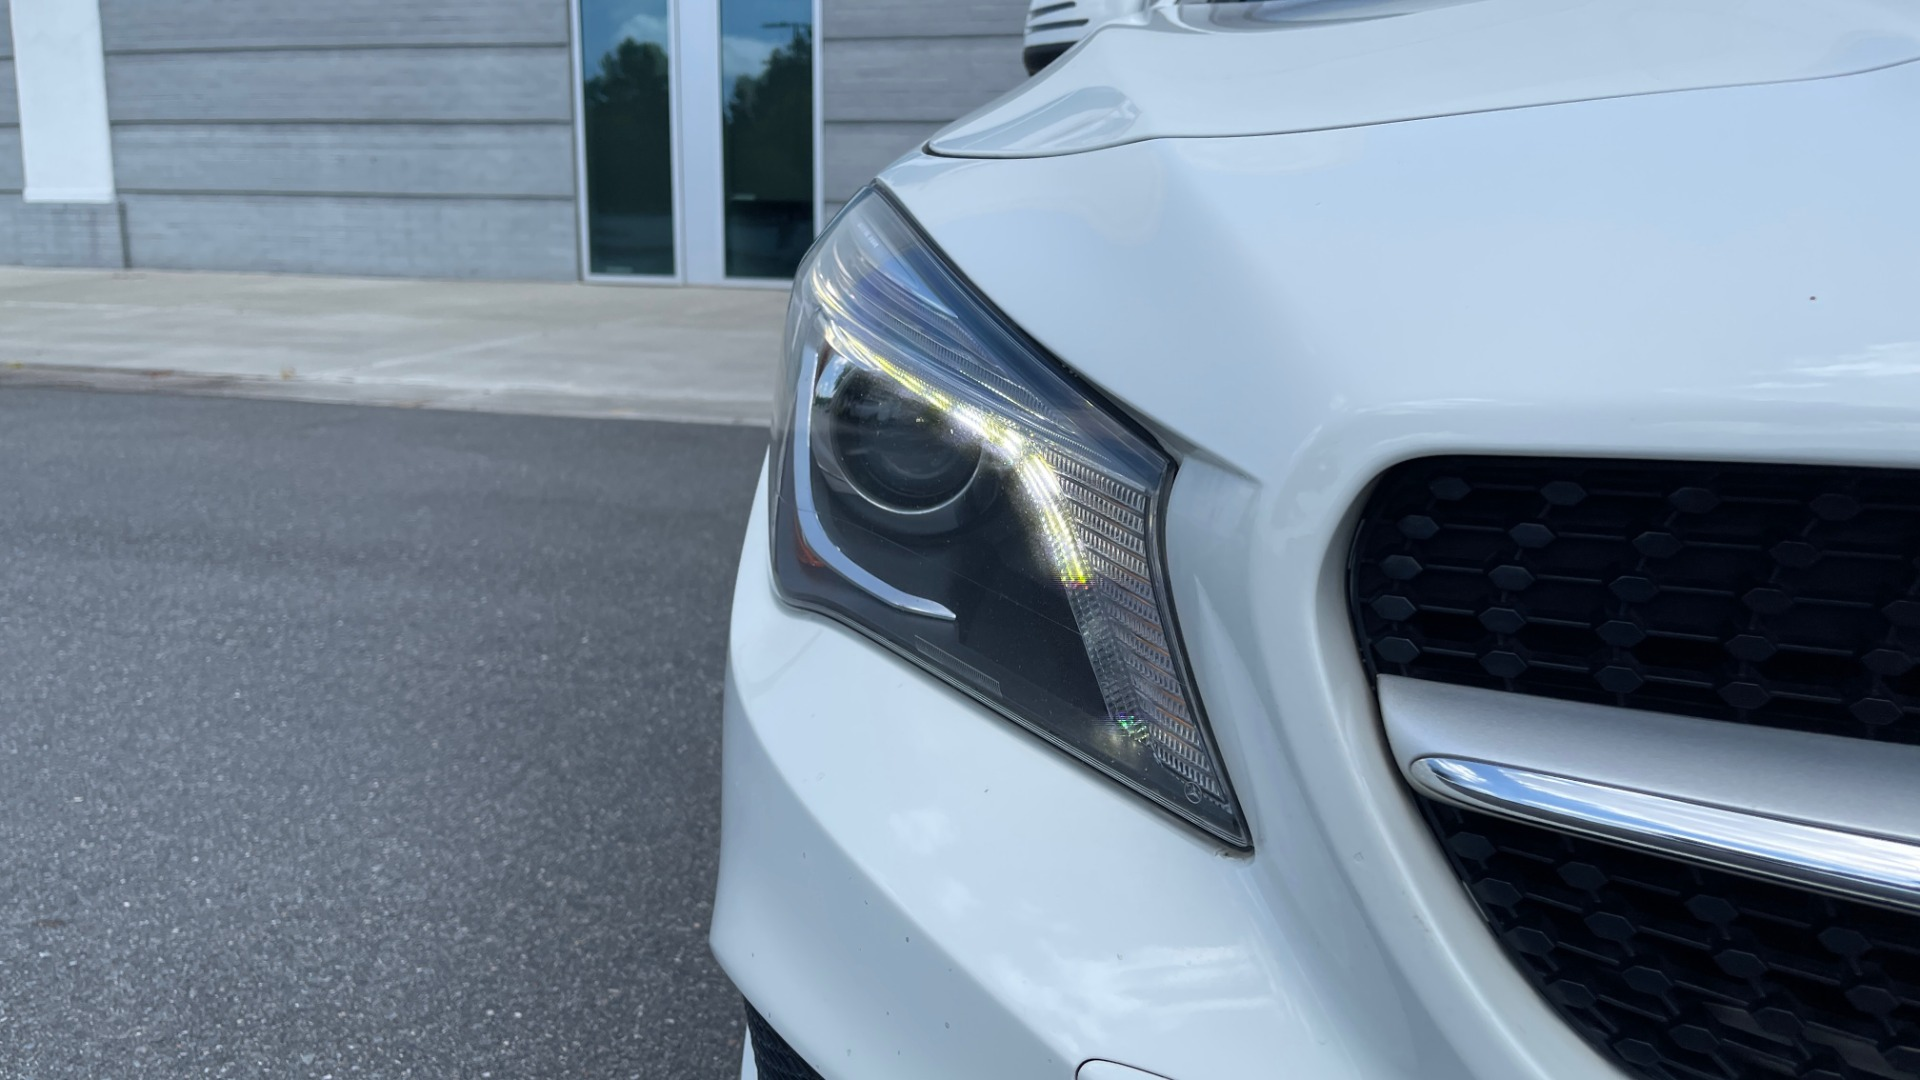 Used 2014 Mercedes-Benz CLA-Class 250 PREMIUM / NAV / MULTIMEDIA PKG / PANO-ROOF / REARVIEW for sale $19,495 at Formula Imports in Charlotte NC 28227 13